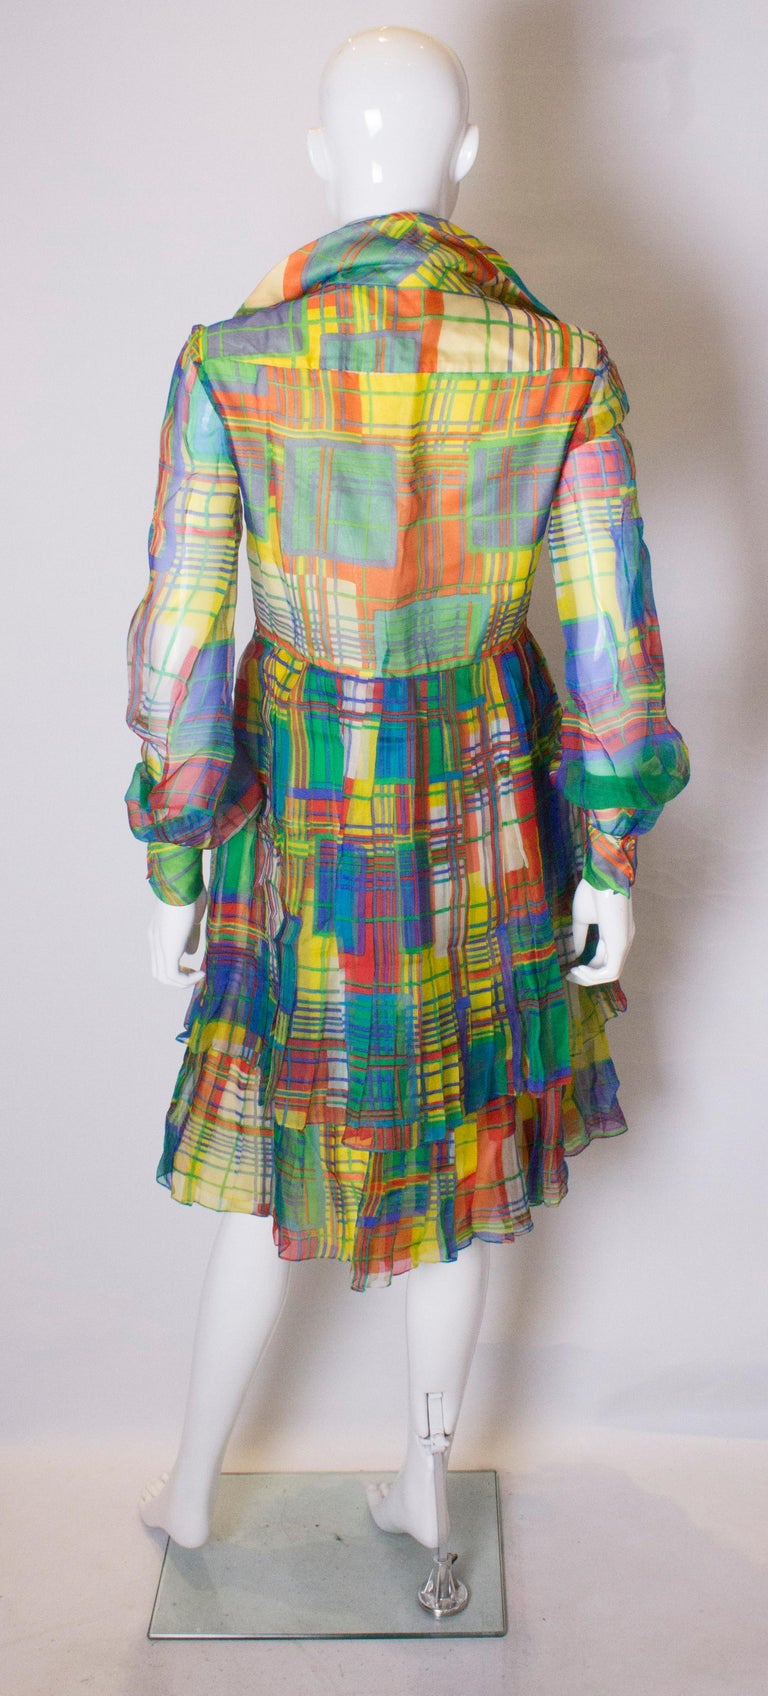 Vintage Silk Chiffon Dress by Nettie Vogue London For Sale 2